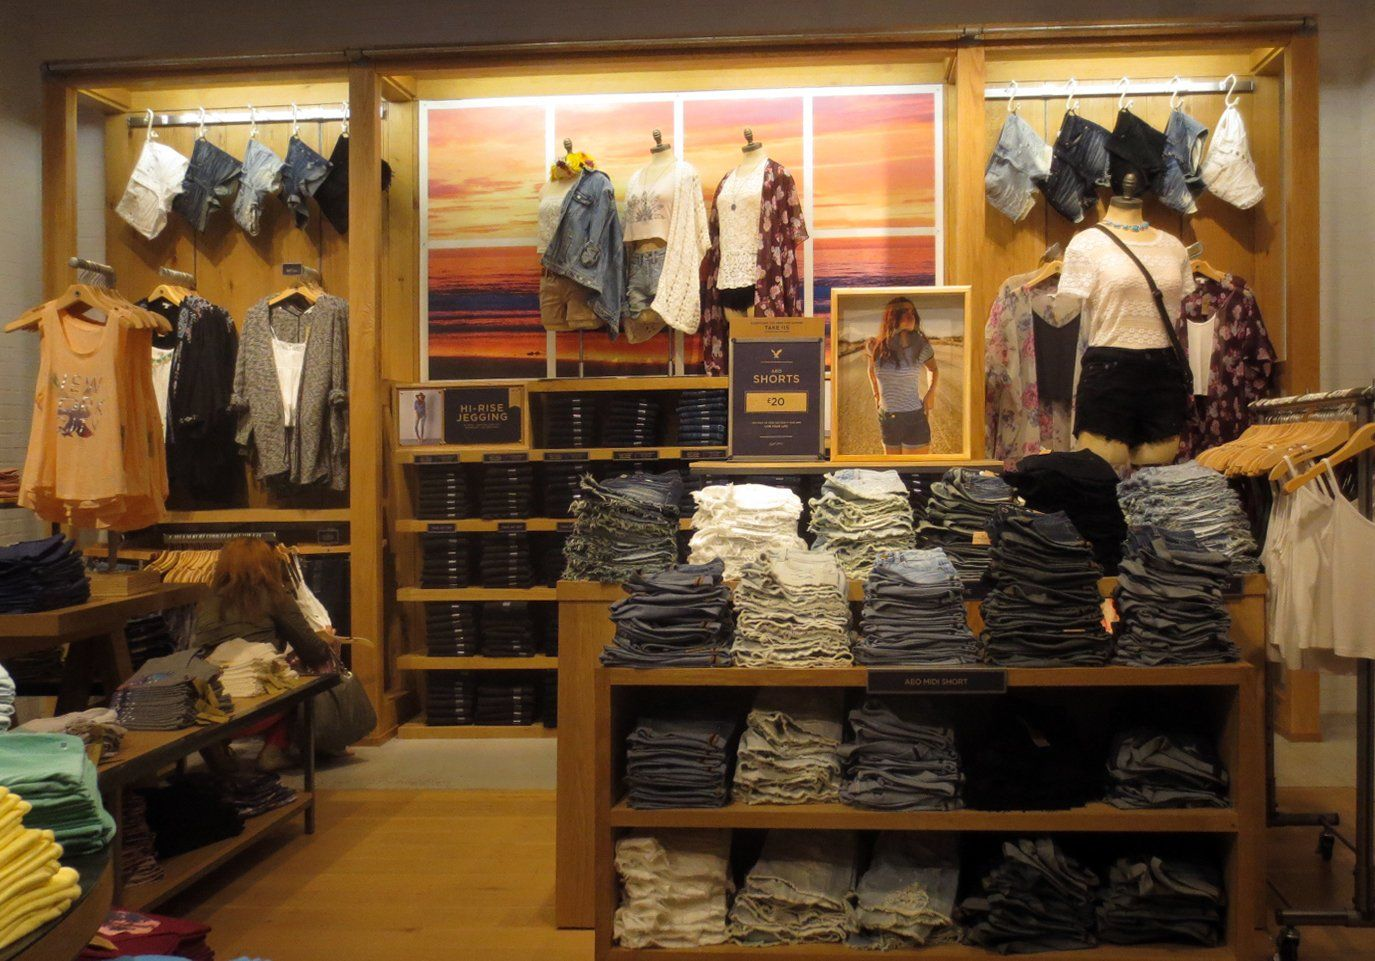 American Home Decor Stores: American Eagle Outfitters